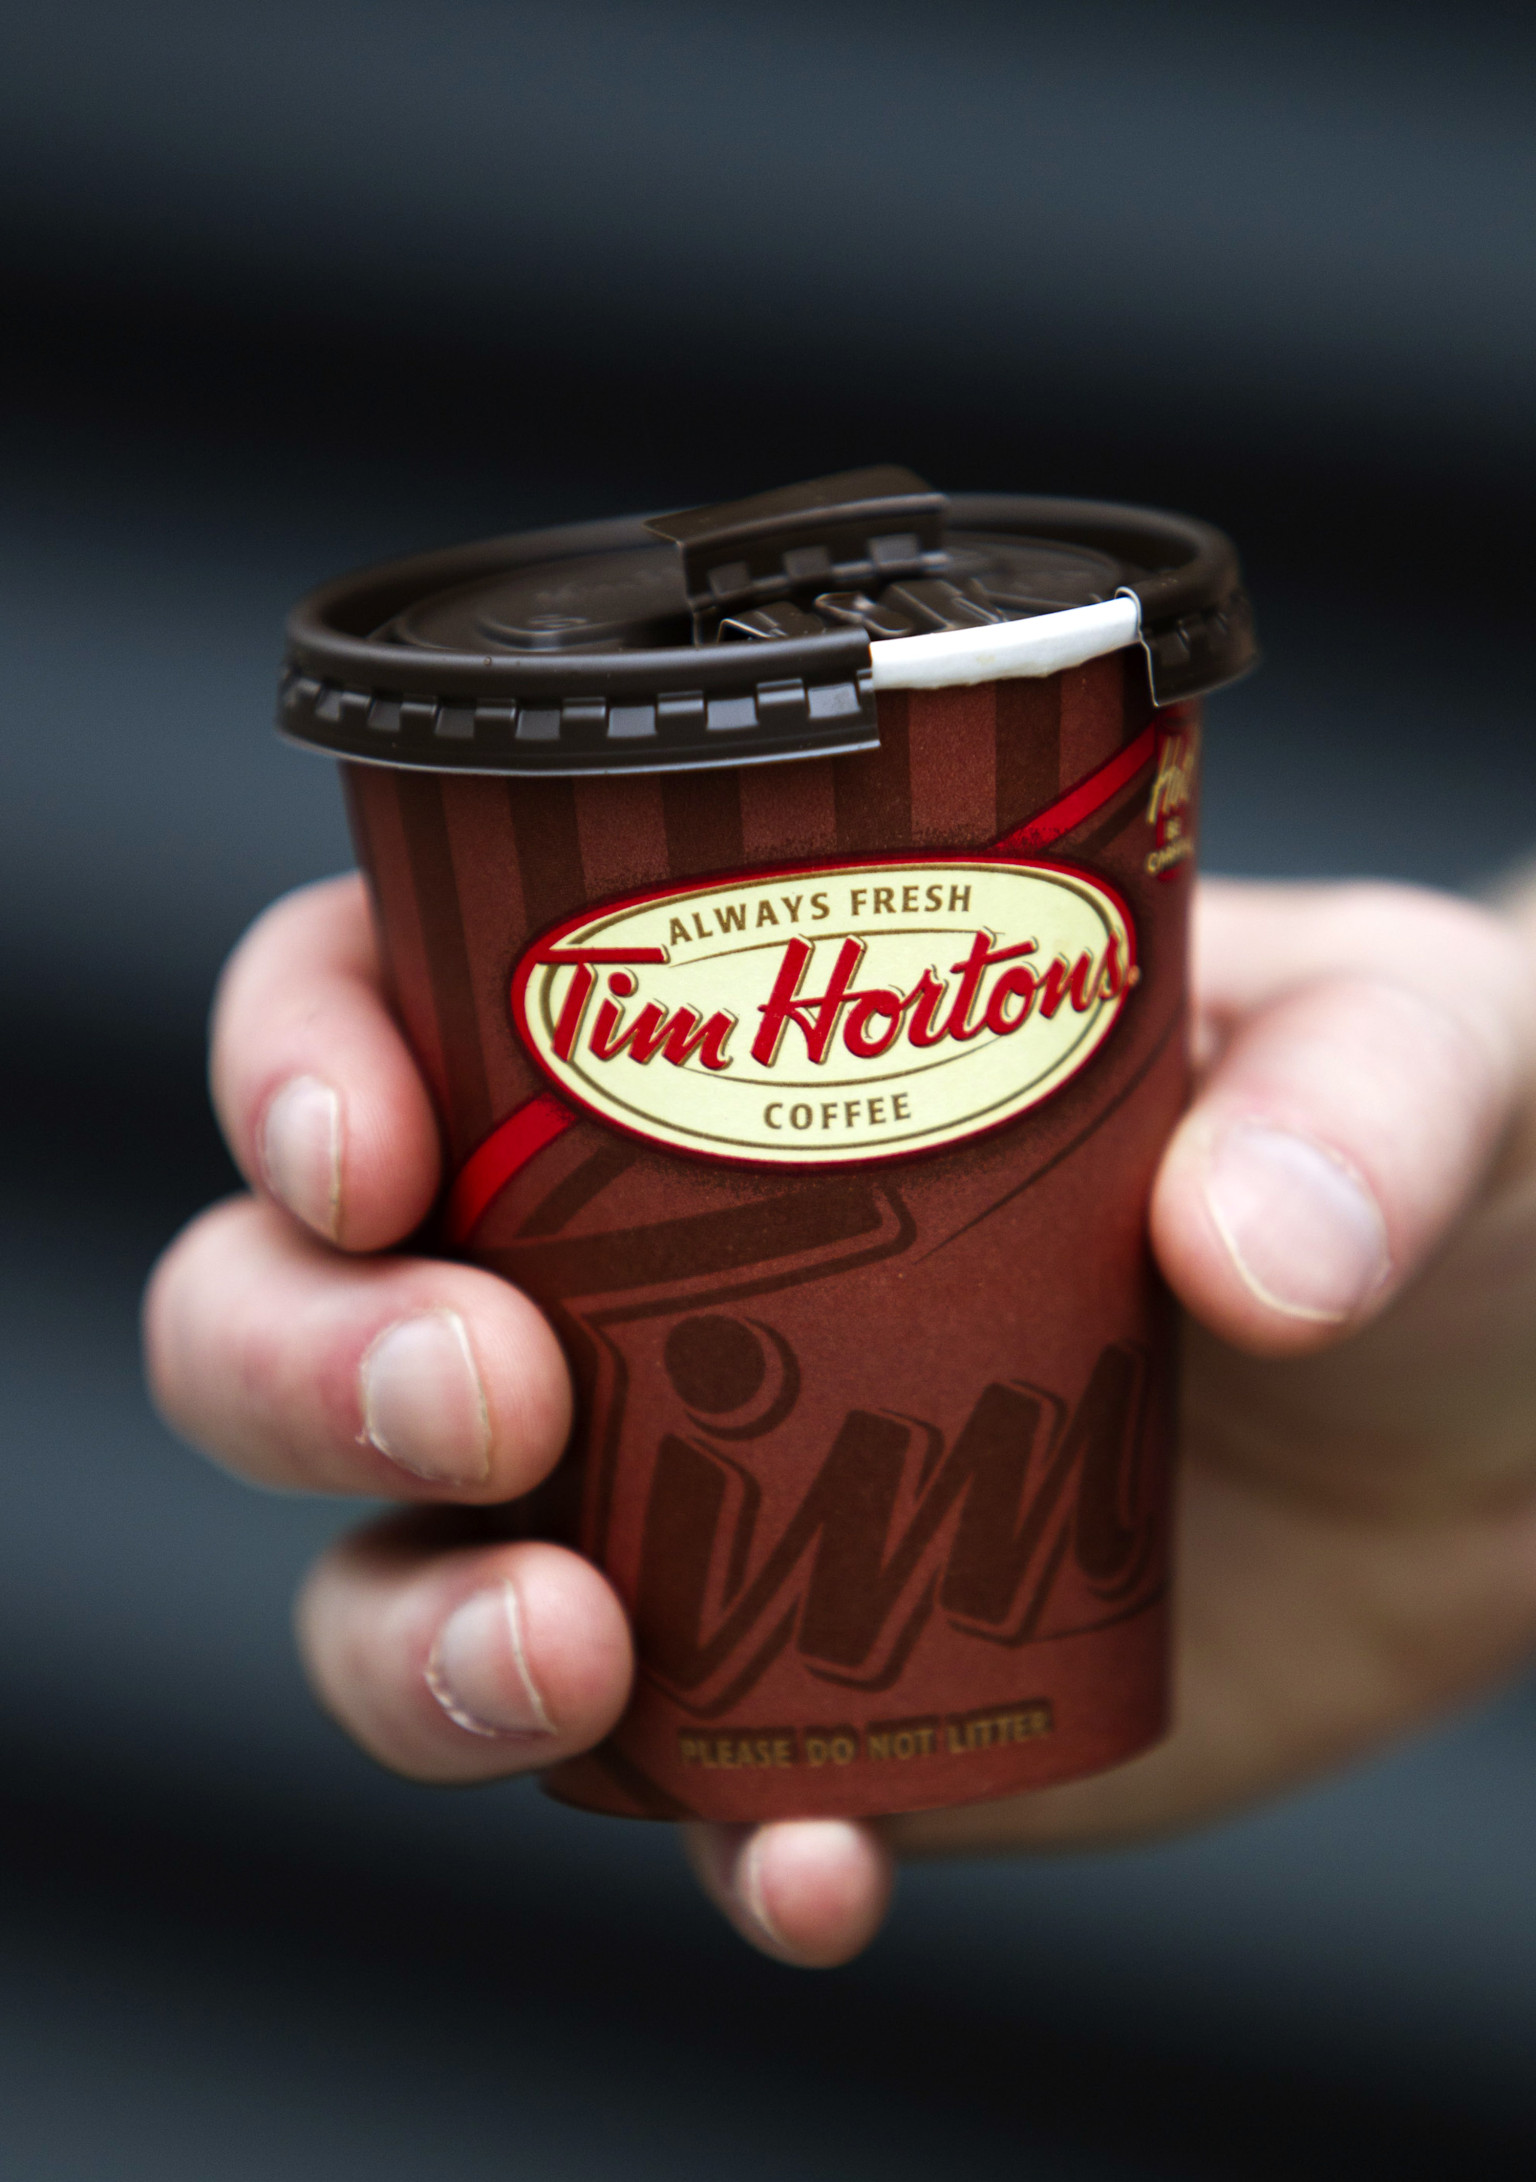 tim hortons website analysis Through many days inside eating in tim hortons, i found some important points that can analyze by swot method, which is a method that captures the key strengths and weaknesses with the restaurant, and describes the opportunities and threats facing the current world now, i will specifically analyse it.